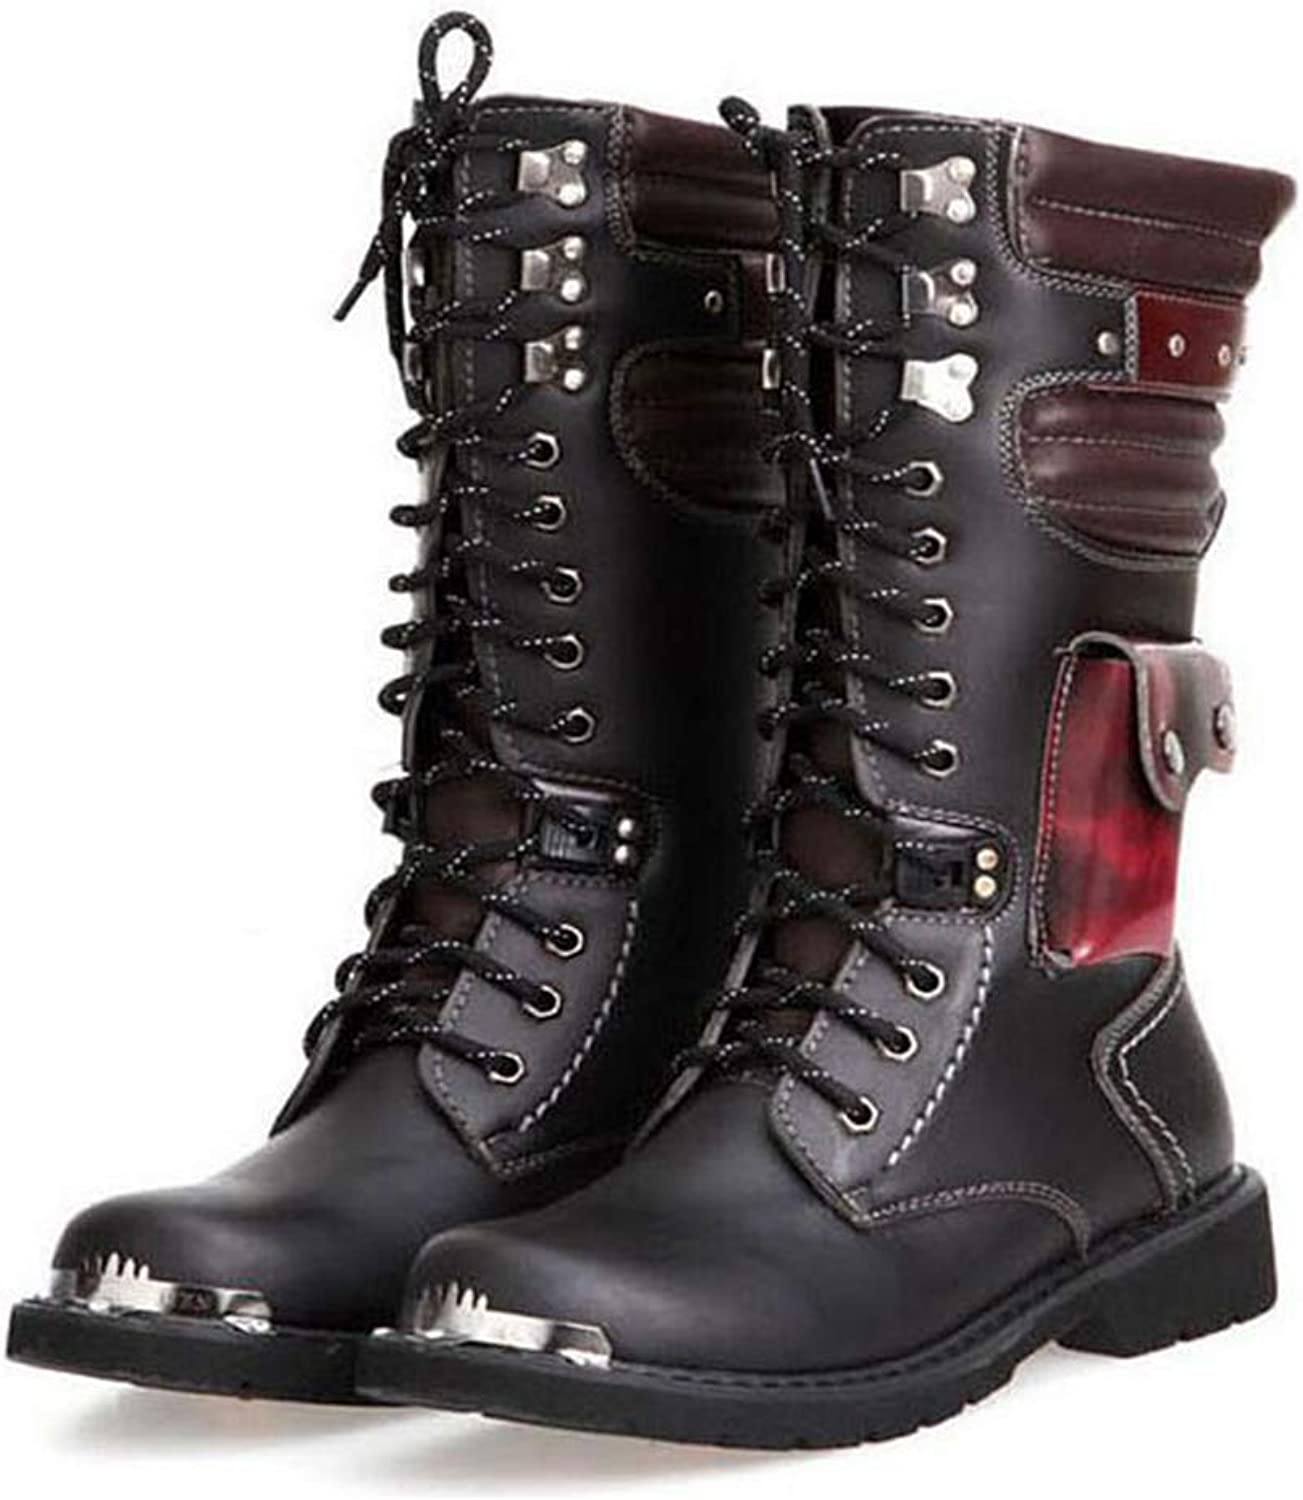 Y-H Men's Boots, Fall Winter Retro High Boots Round Toe Lace-up Martins Boots, Tooling Boots Military Boots Slip-Ons Combat Boots (color   Black, Size   43)